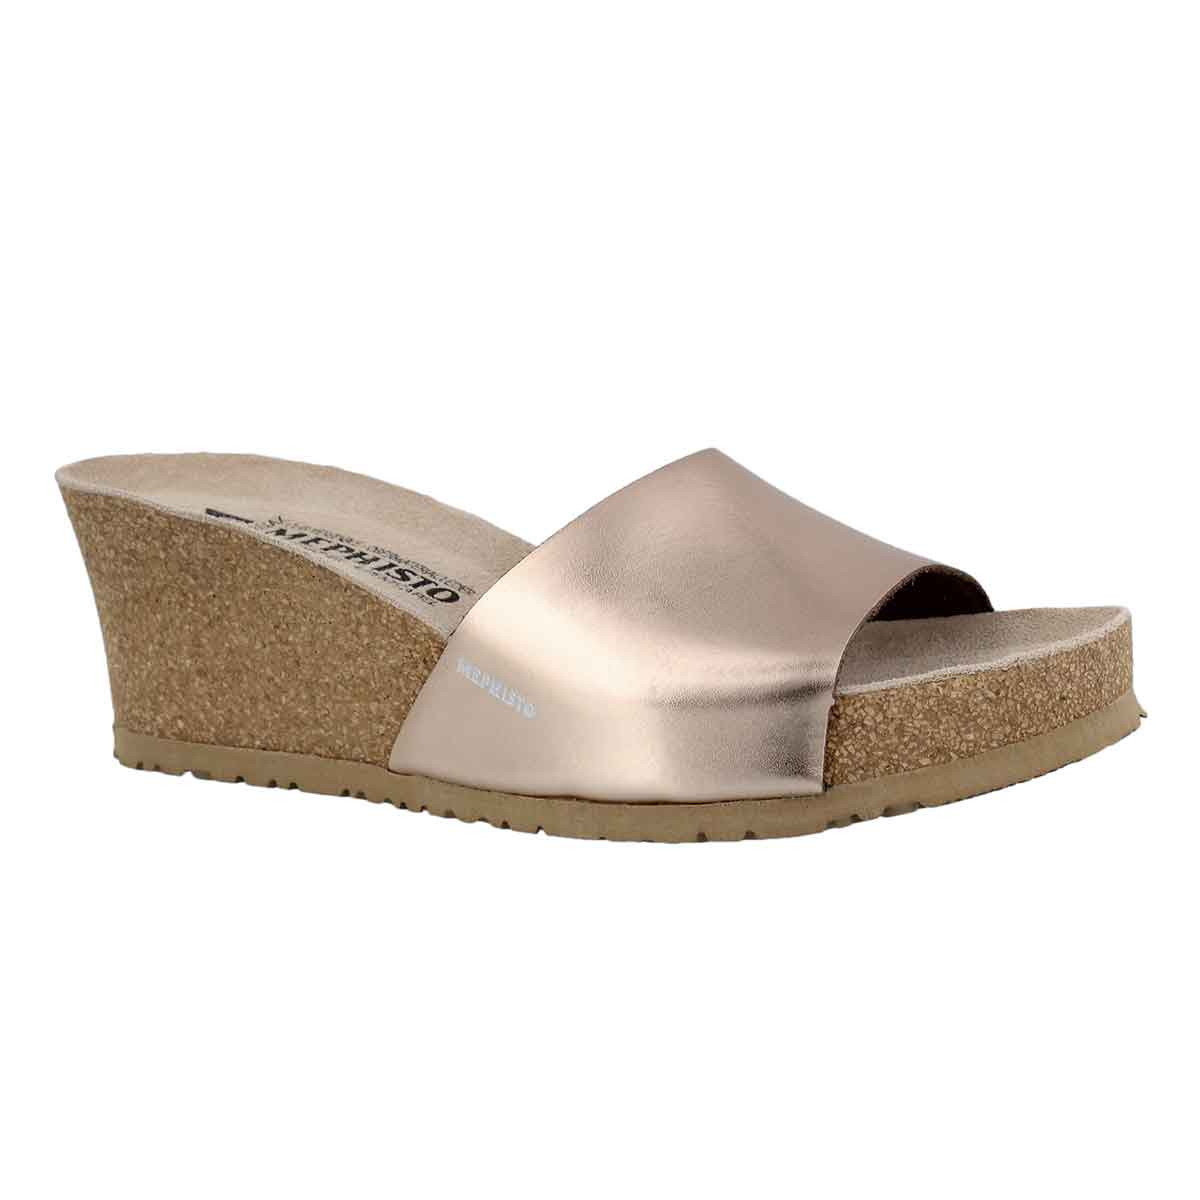 Women's LISE old pink cork footbed wedge sandals